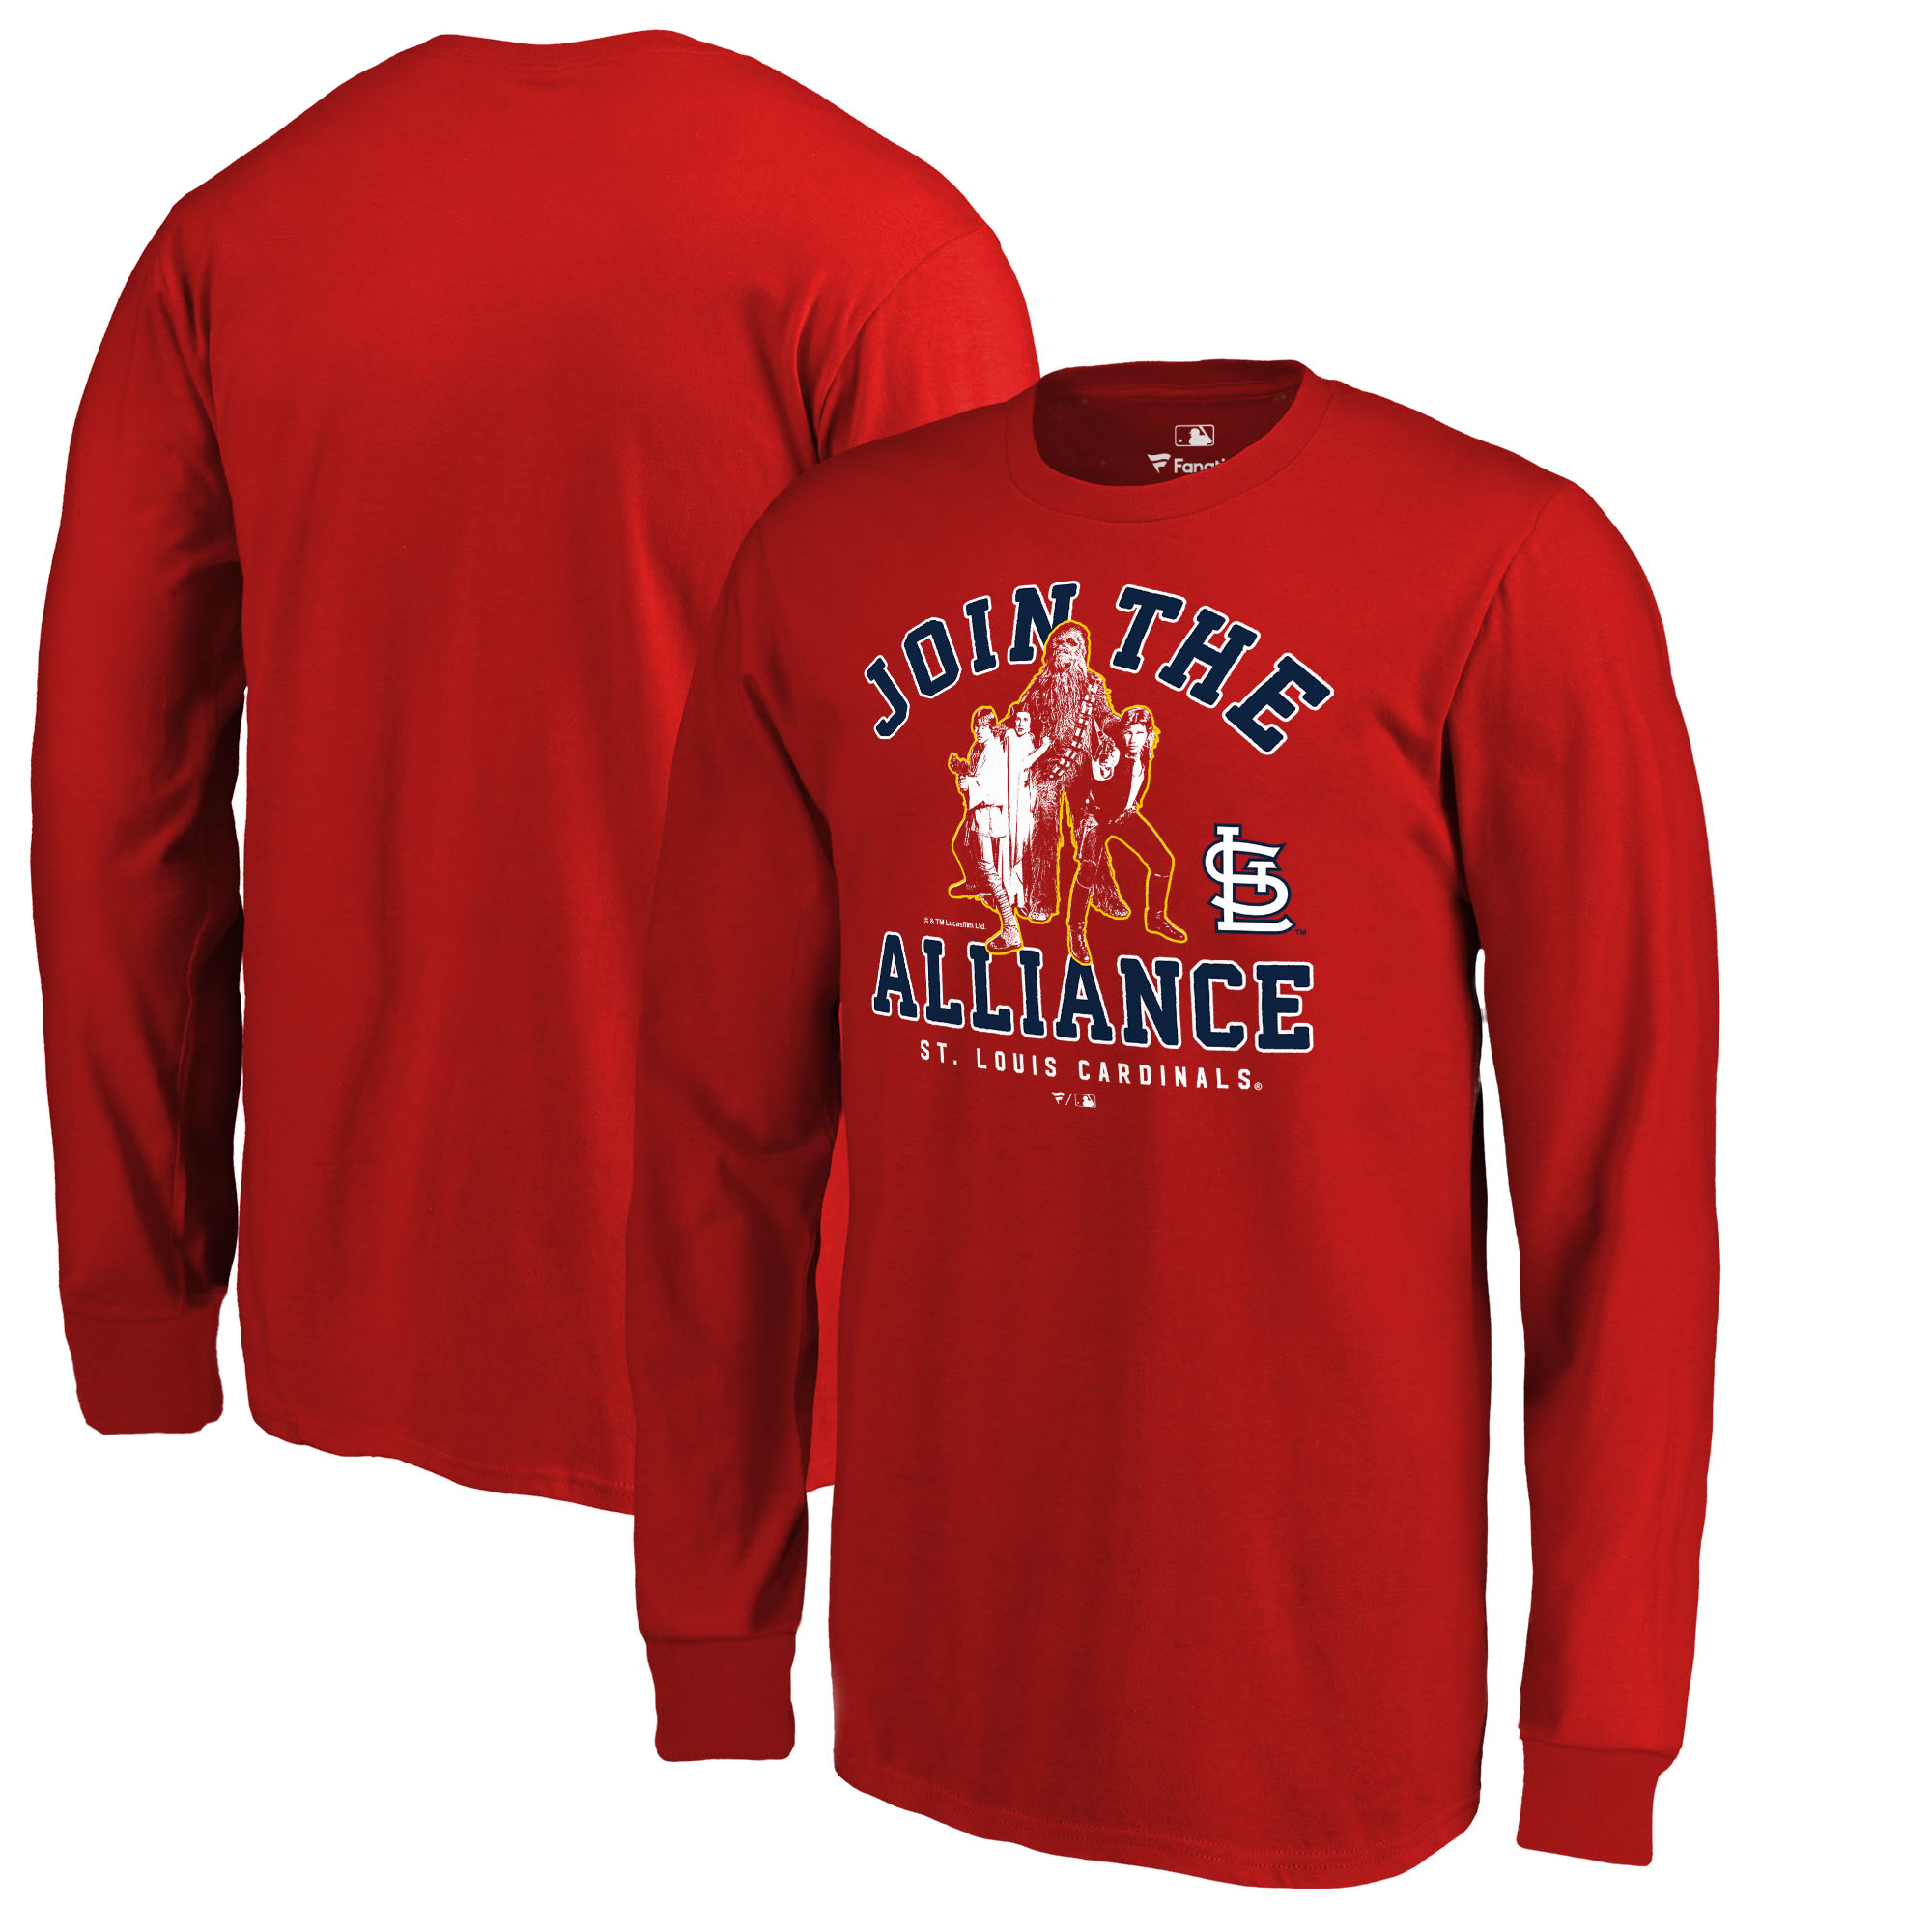 St. Louis Cardinals Fanatics Branded Youth MLB Star Wars Join The Alliance Long Sleeve T-Shirt - Red